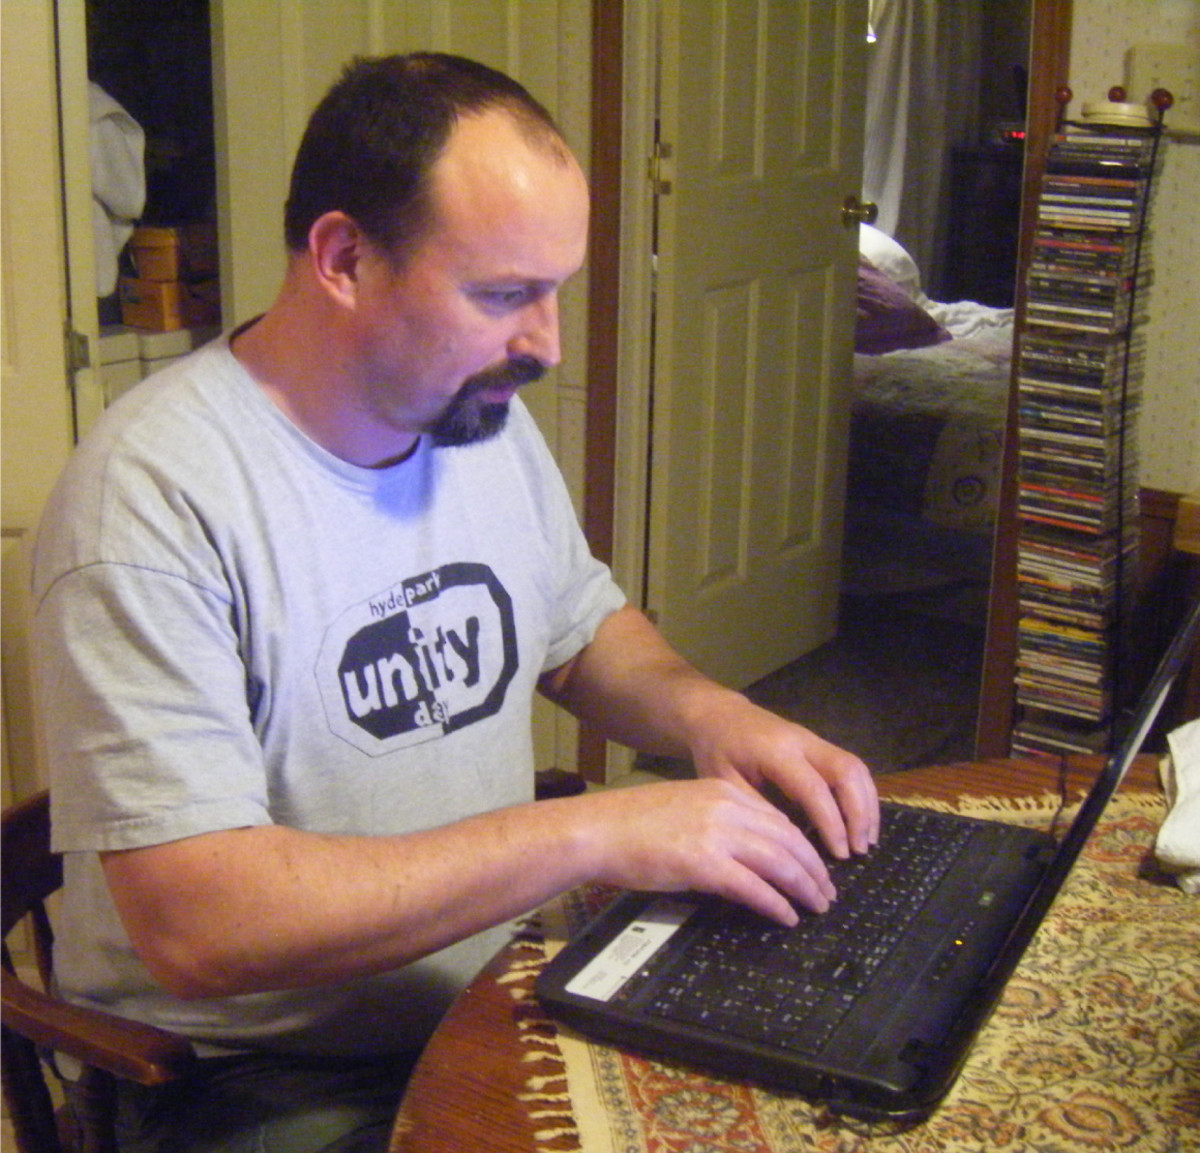 The writer at his computer.  MTurk can be more than a little confusing when you first begin, trying to assess the tasks and the job providers.